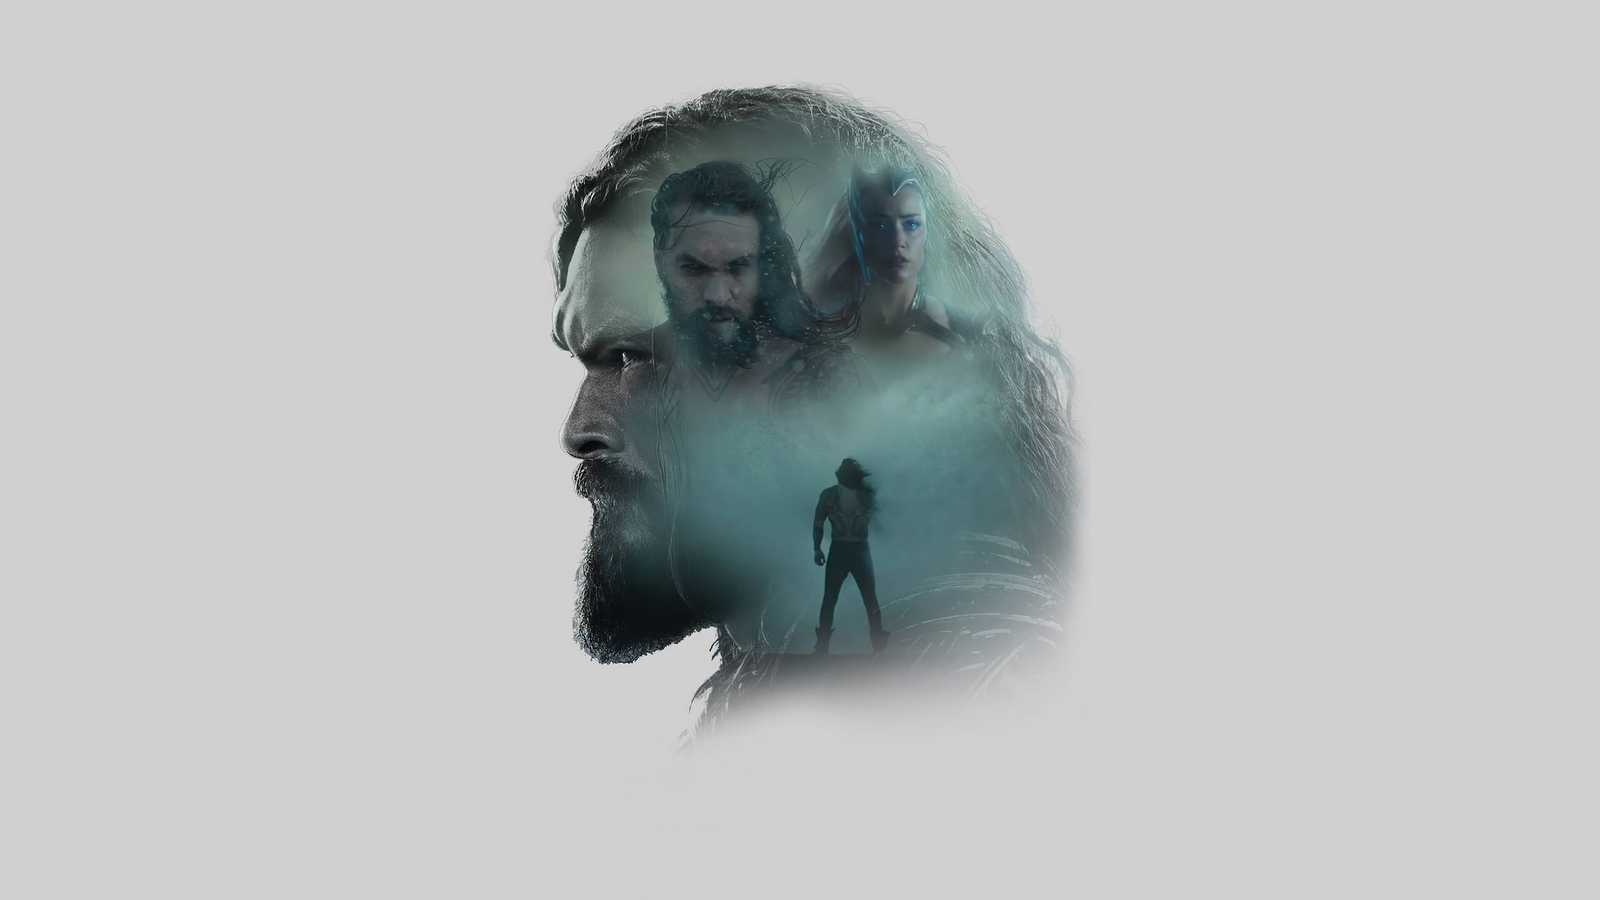 jason-momoa-as-aquaman-zack-synders-justice-league-minimal-h8.jpg